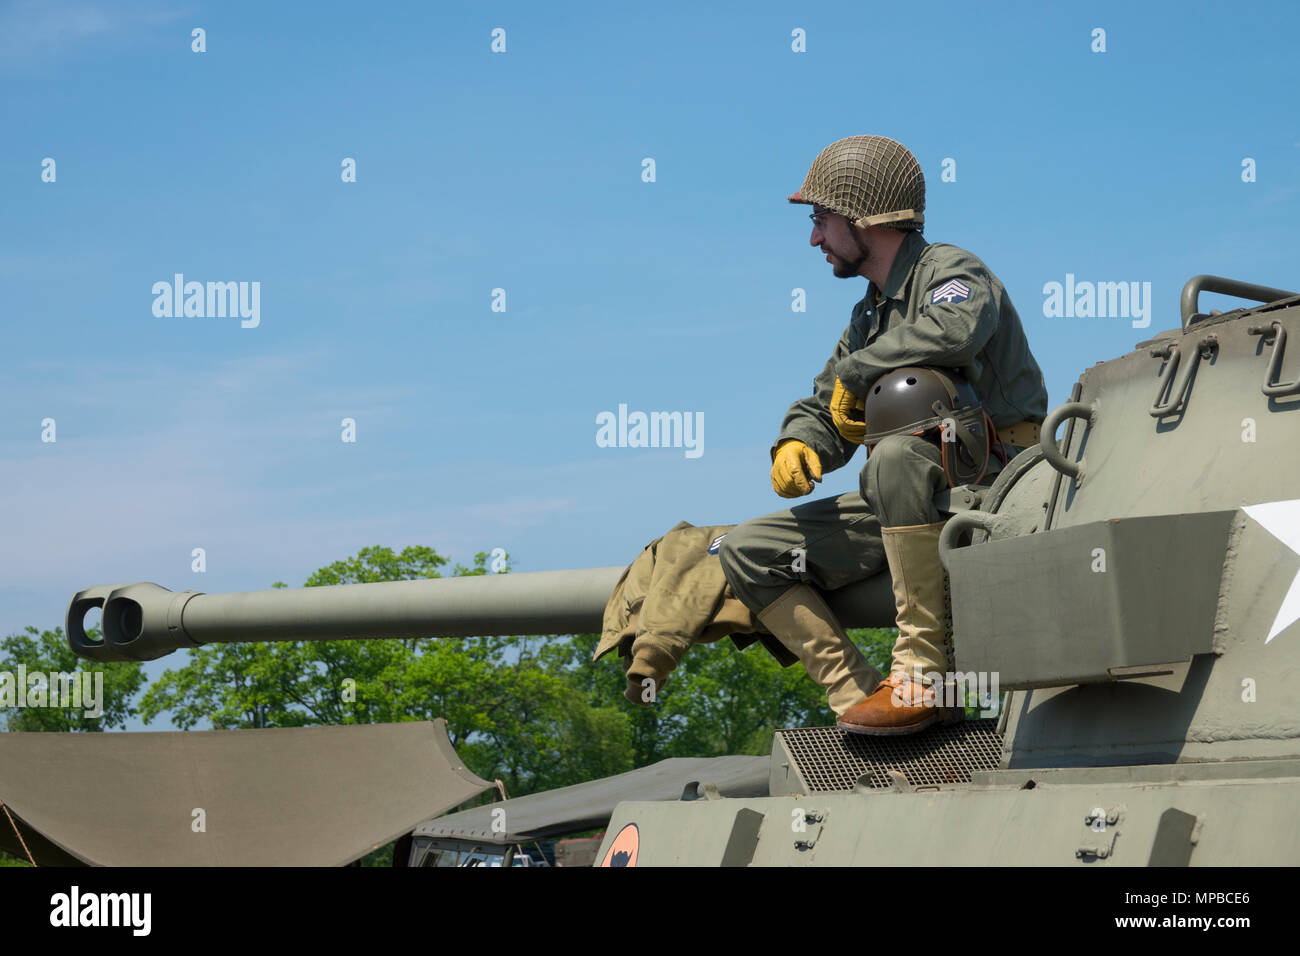 The U.S. Army Heritage and Education Center a WWII re-enactor on a M18 Hellcat tank destroyer in Carlisle Pennsylvania - Stock Image